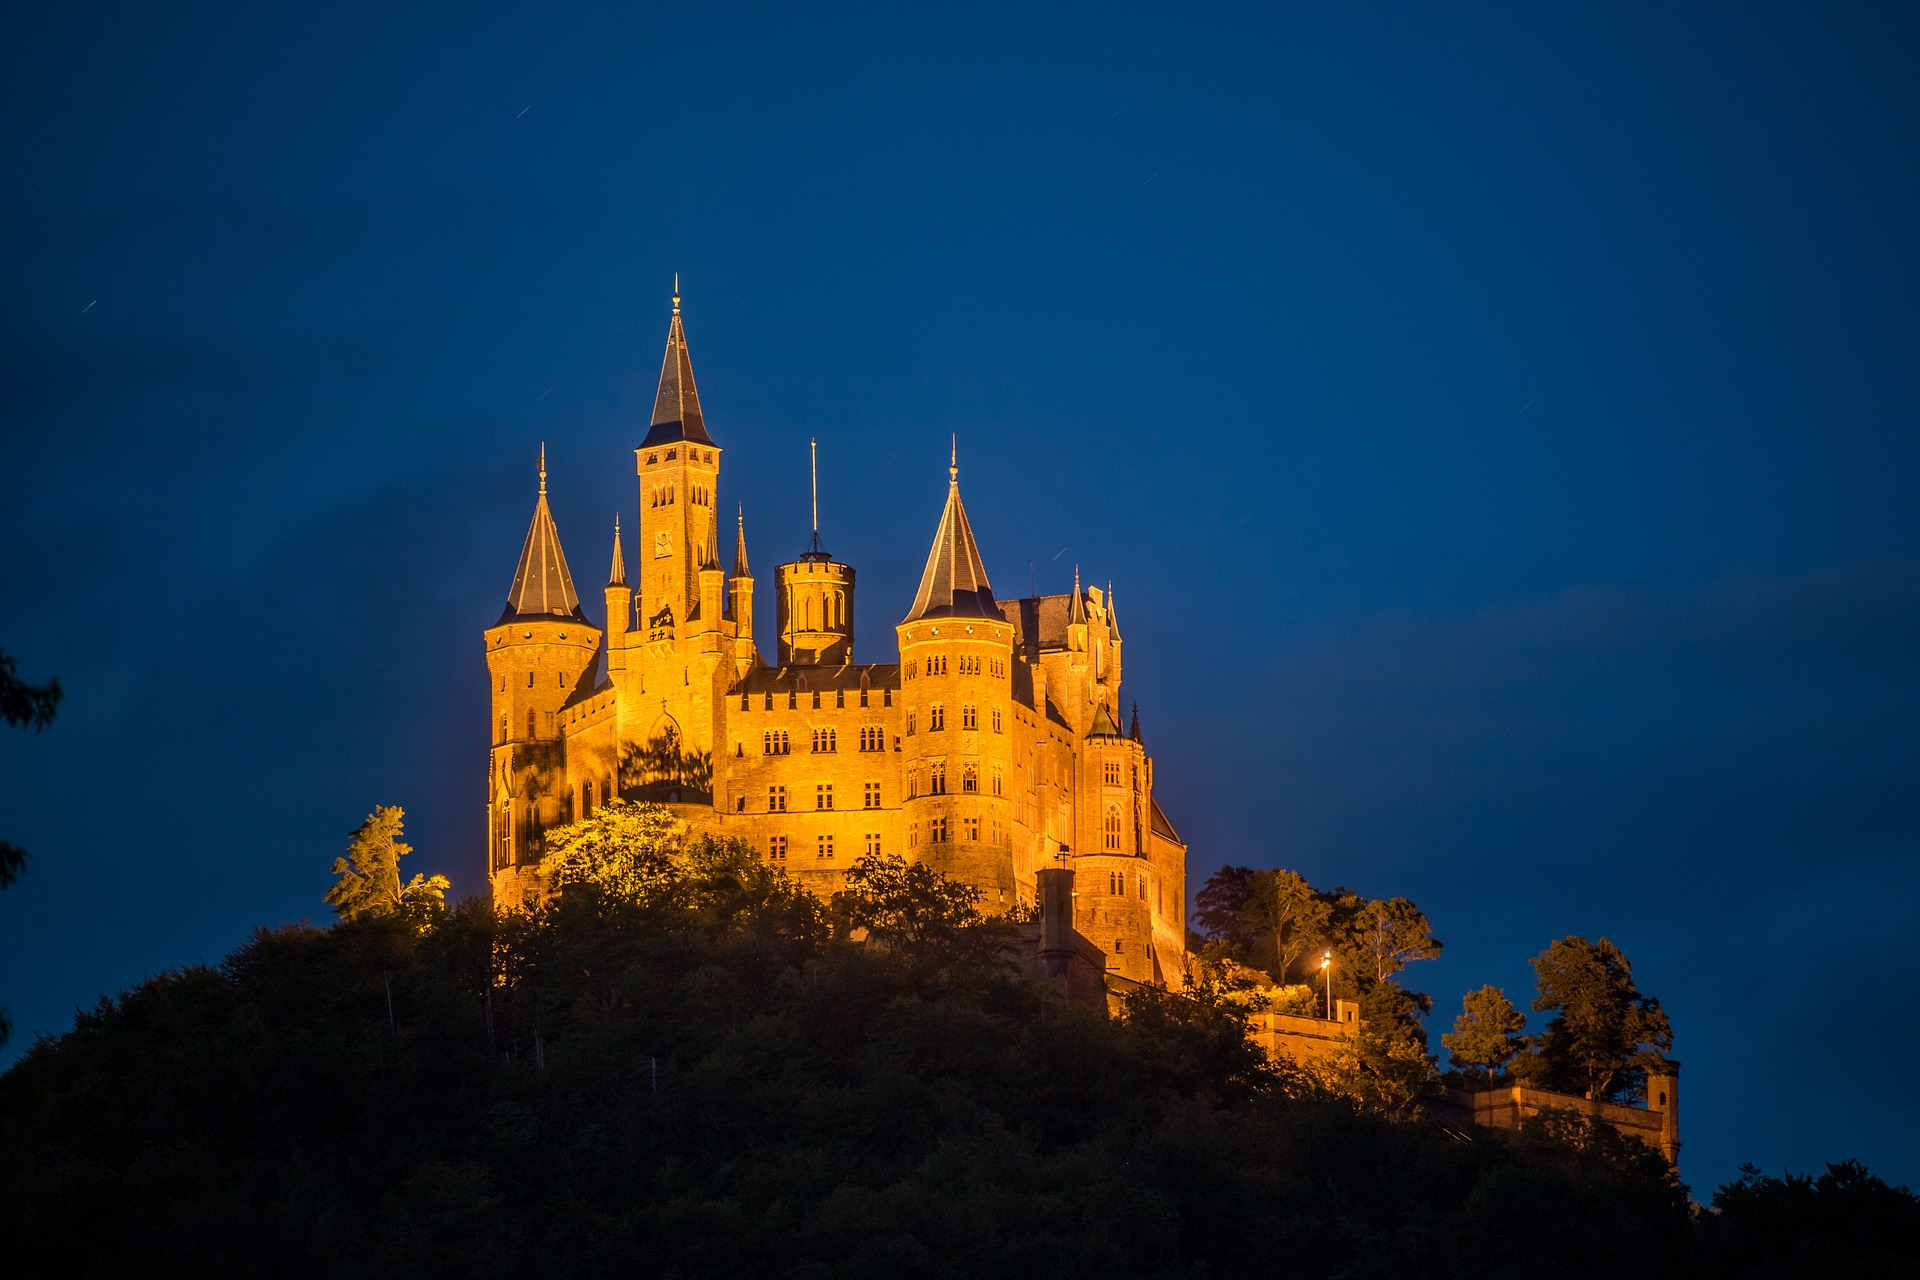 Castle Lichtenstein at Night